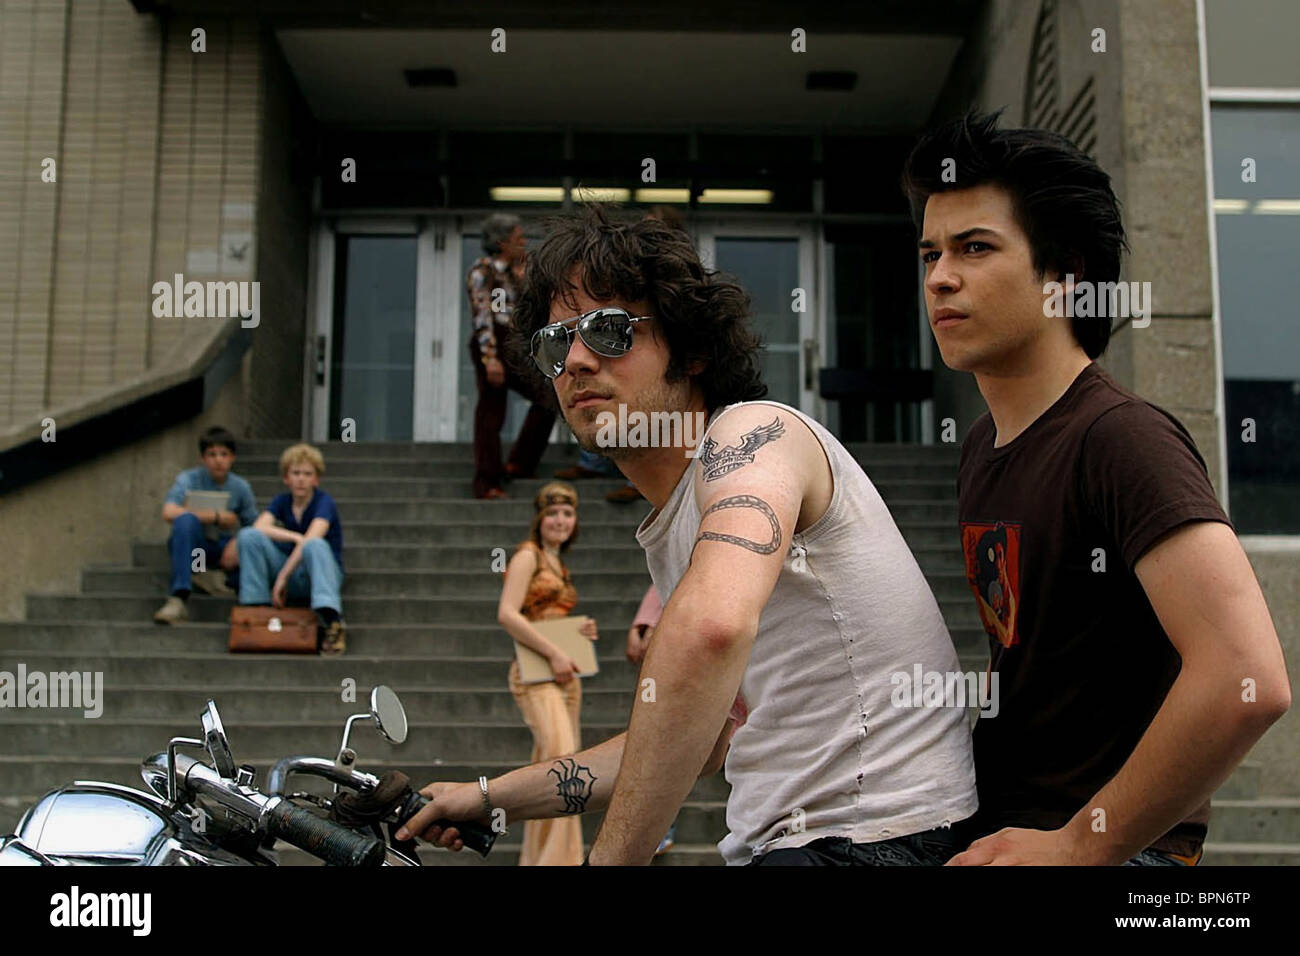 PIERRE-LUC BRILLANT & MARC-ANDRE GRONDIN C.R.A.Z.Y.; CRAZY (2005) - Stock Image